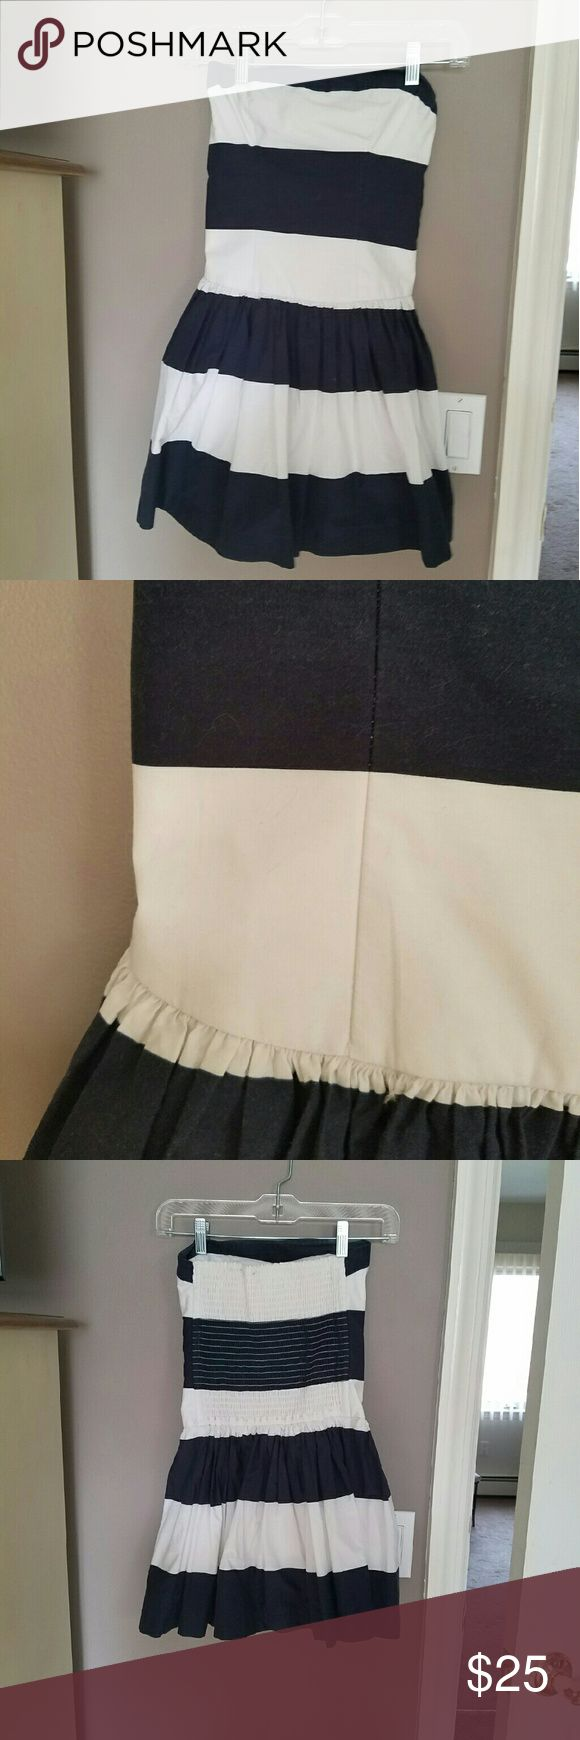 Abercrombie and fitch nautical dress Beautiful navy blue and white nautical dress by Abercrombie and fitch. I'm 5'6 and this hits mid-thigh. Worn once. Very cute for the summer! Size xs. Abercrombie & Fitch Dresses Mini